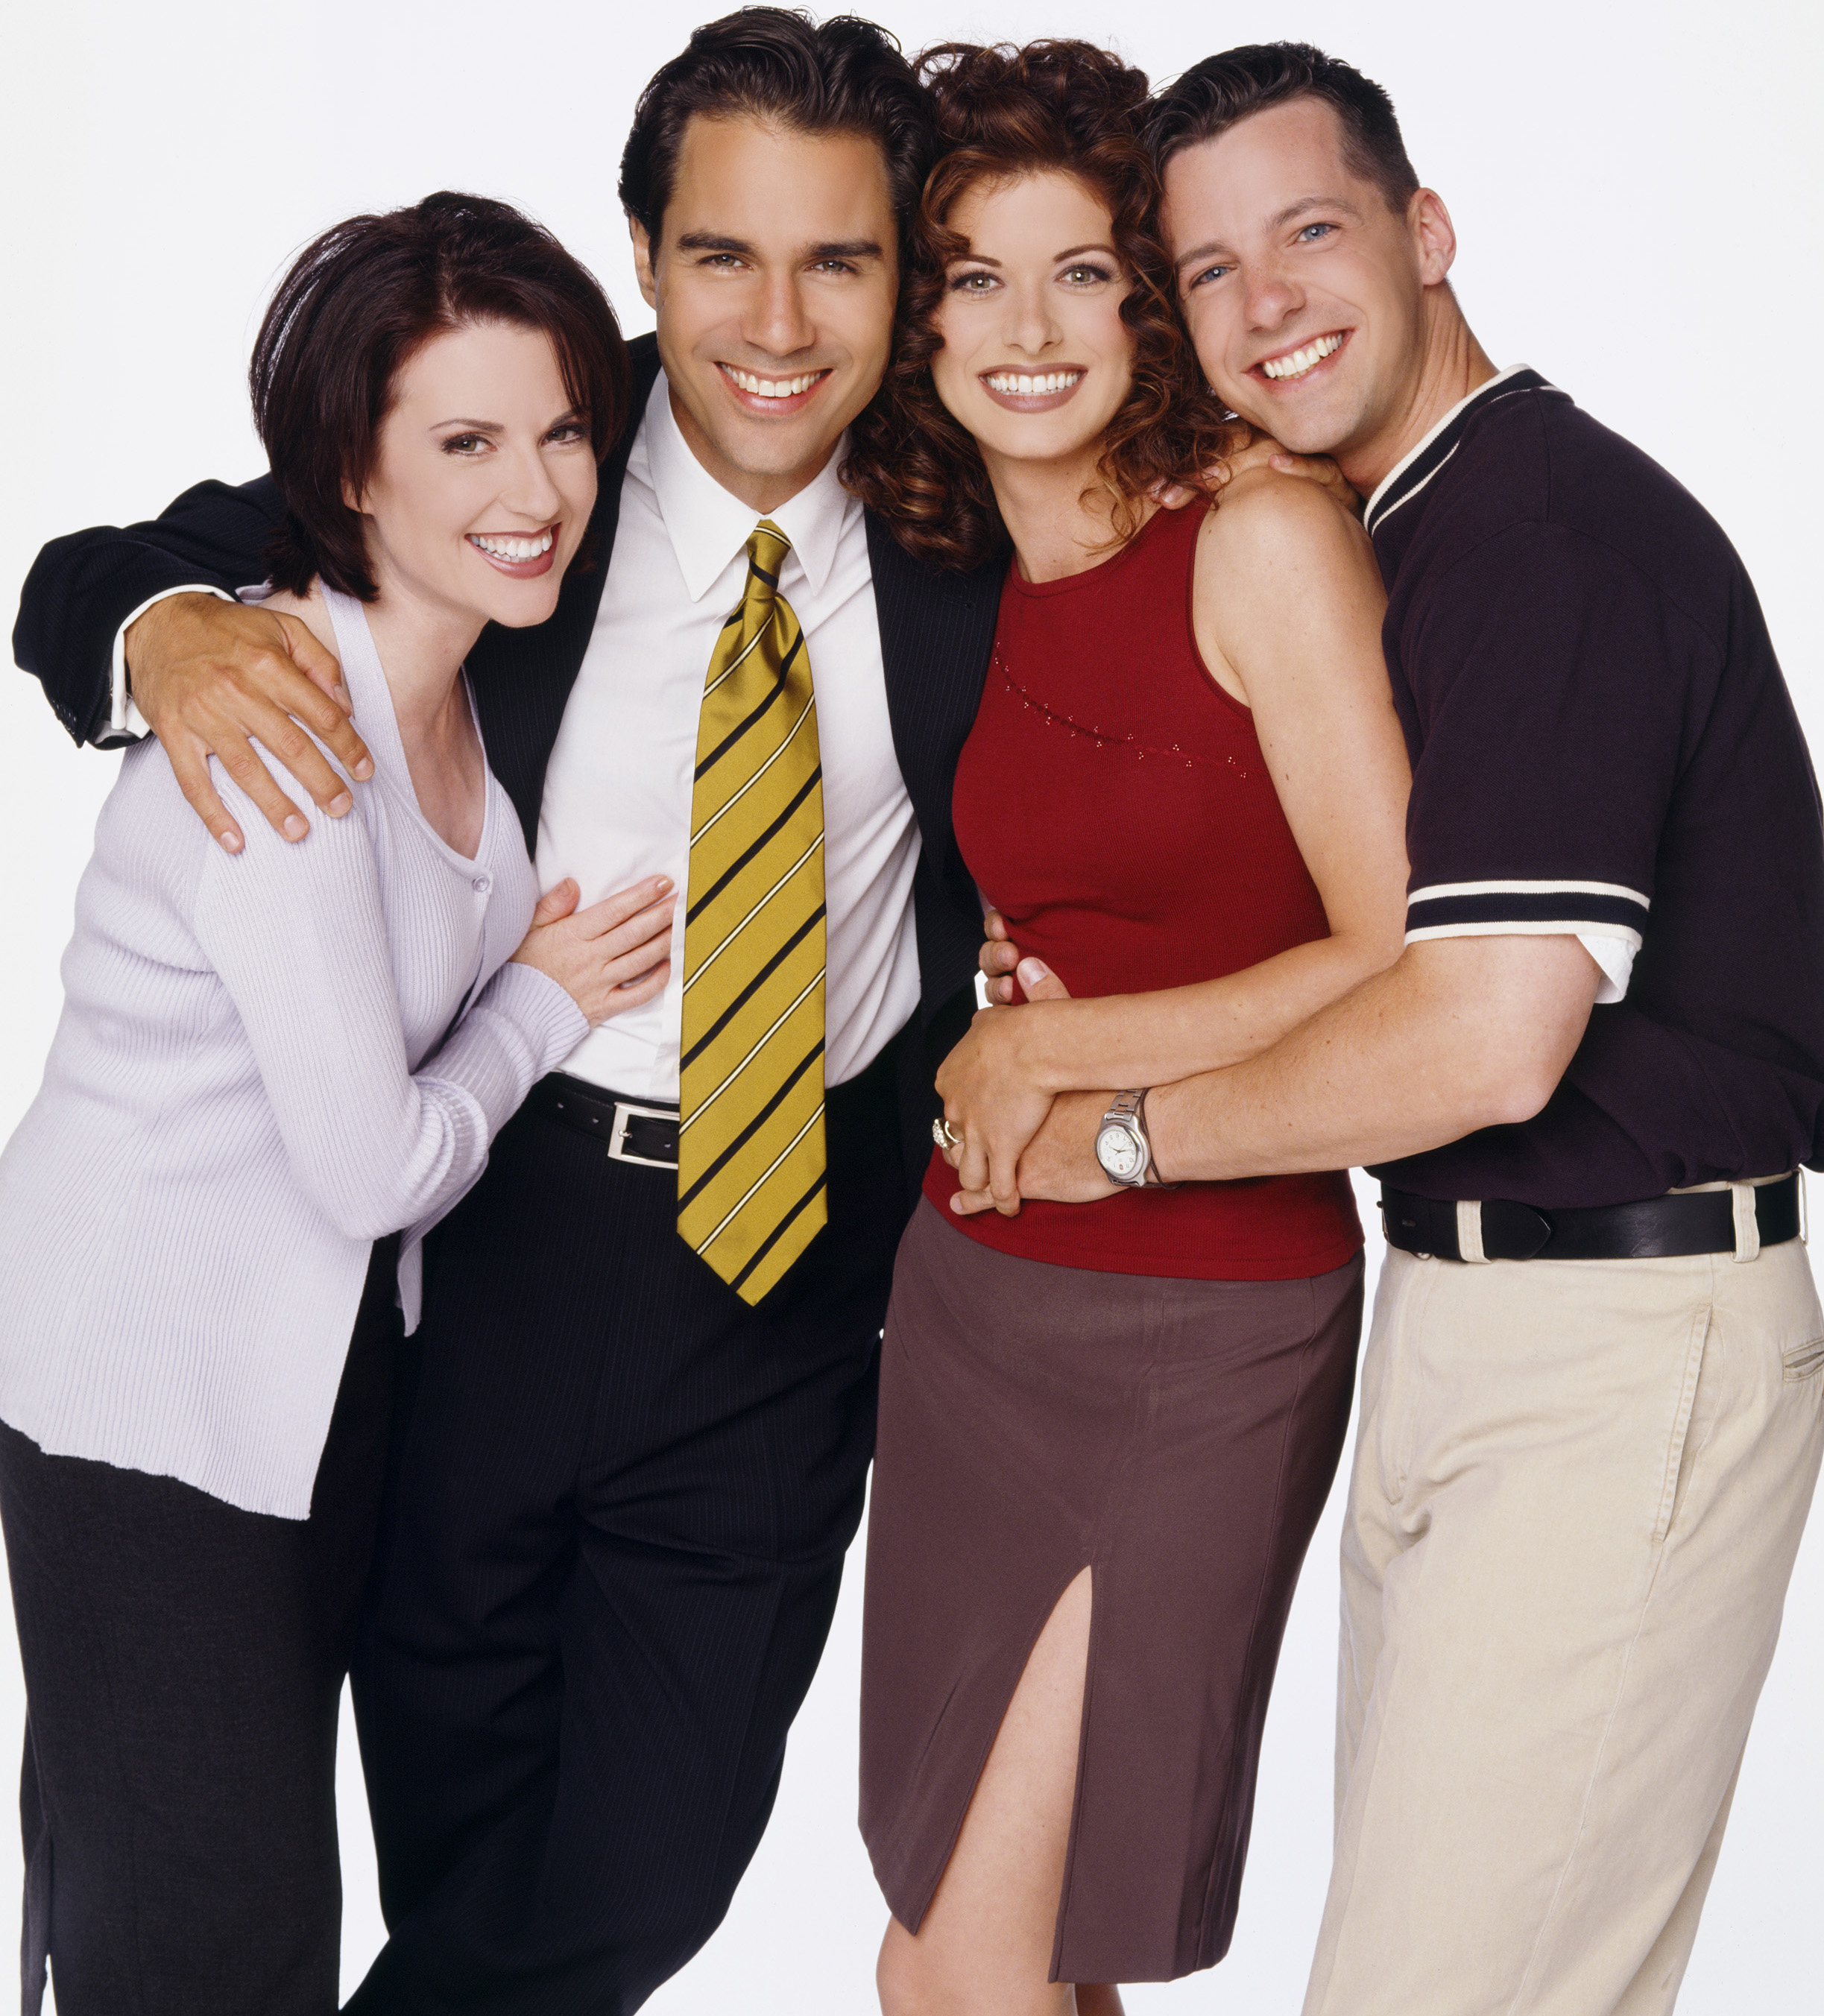 HQ Will & Grace Wallpapers | File 1457.54Kb